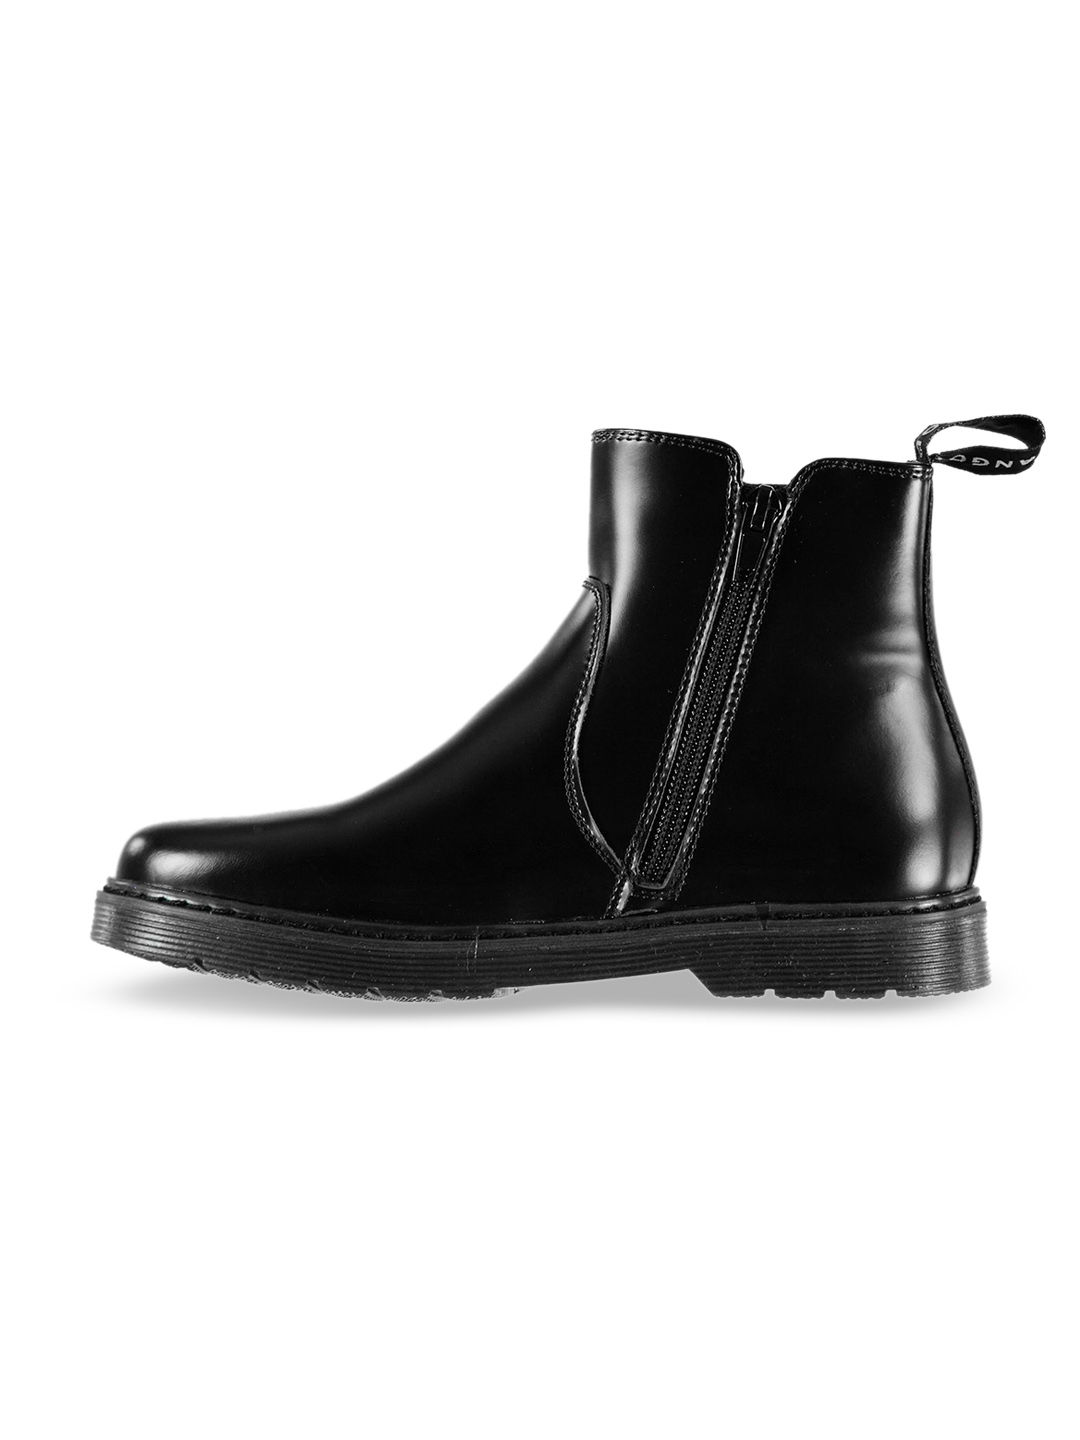 3deadf3b Buy Kangol Girls Black Leather Chelsea Flat Boots - Casual Shoes for ...